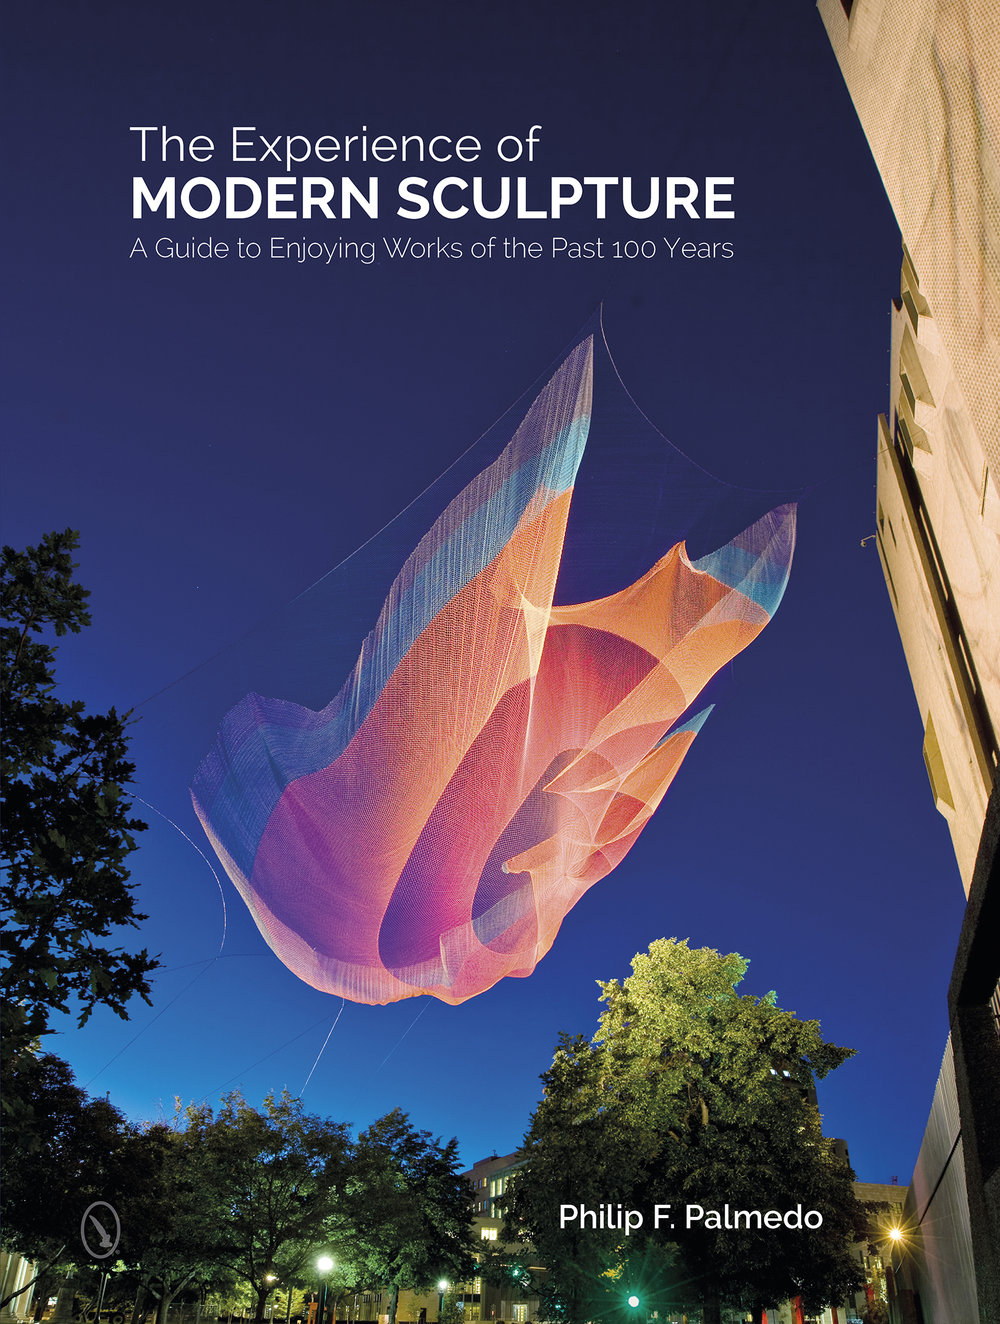 THE EXPERIENCE OF MODERN SCULPTURE